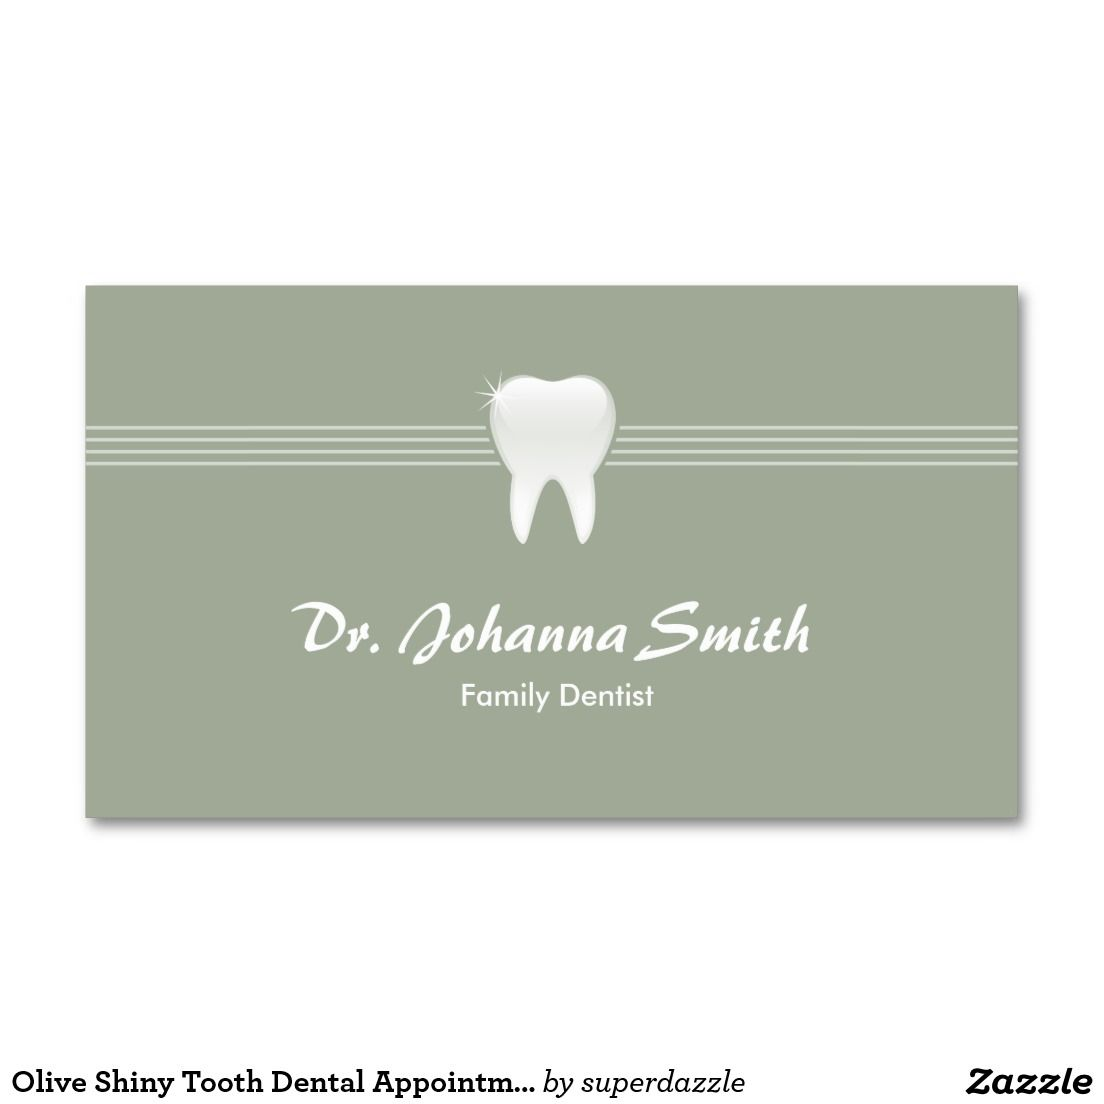 Shiny Tooth Dental Appointment Olive color business card template ...